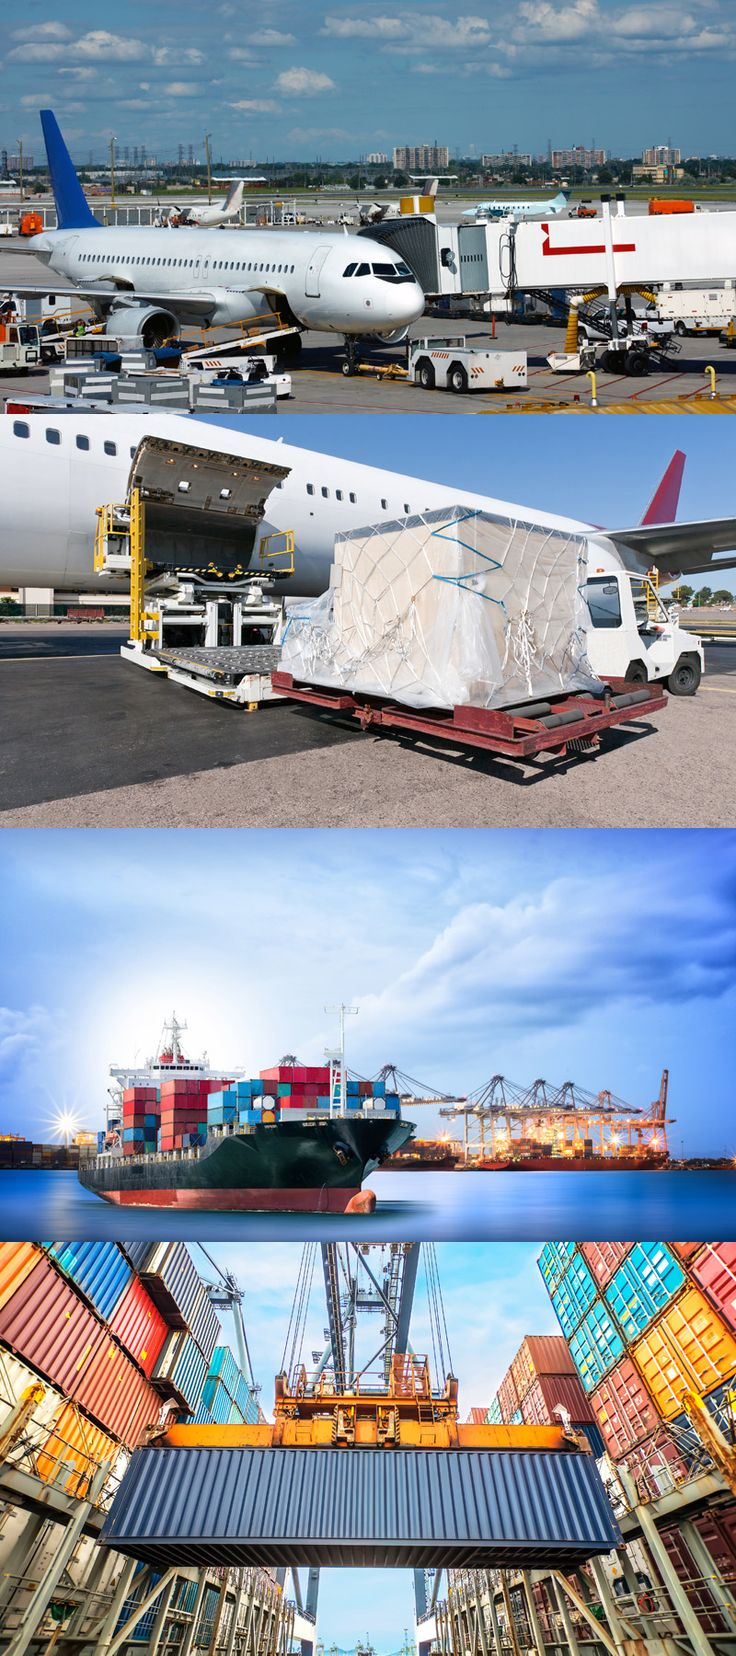 Cargo Traffic to India from UK. #CargotoIndia read more: https://www.parcelstoindia.co.uk/blog/cargo-traffic-india-uk/